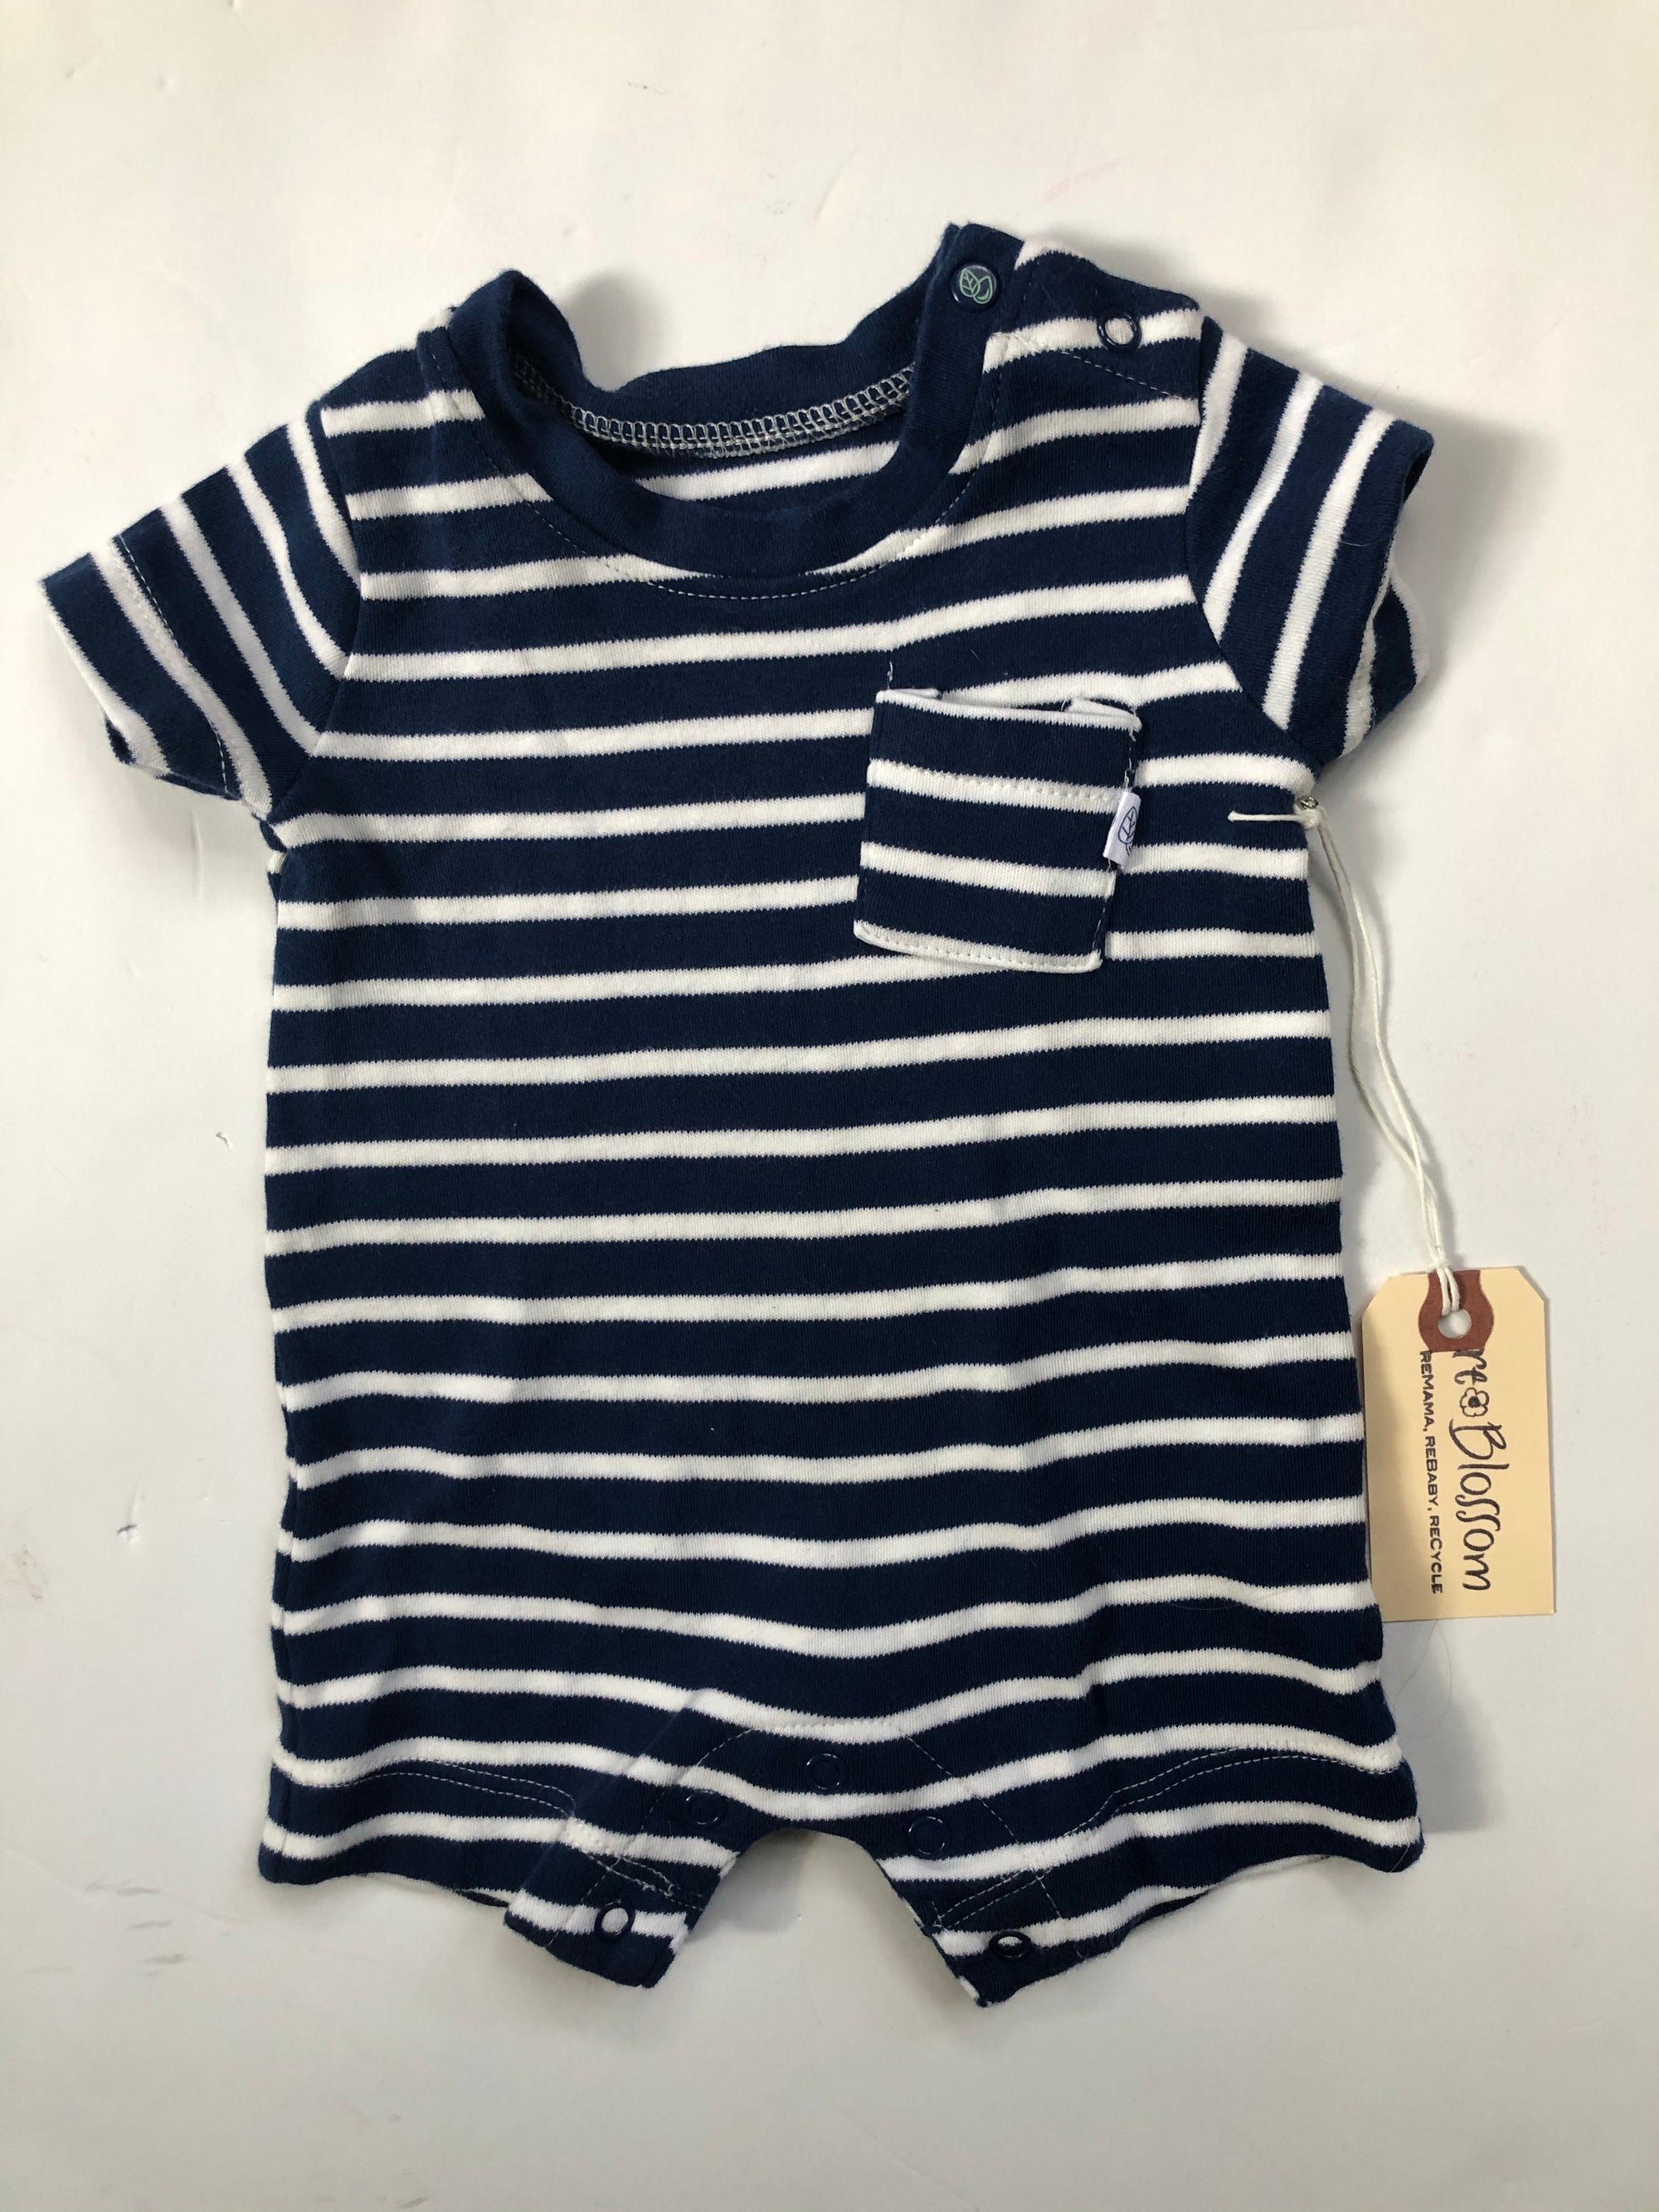 Resale Oliver & Rain Navy Striped Romper - Newborn